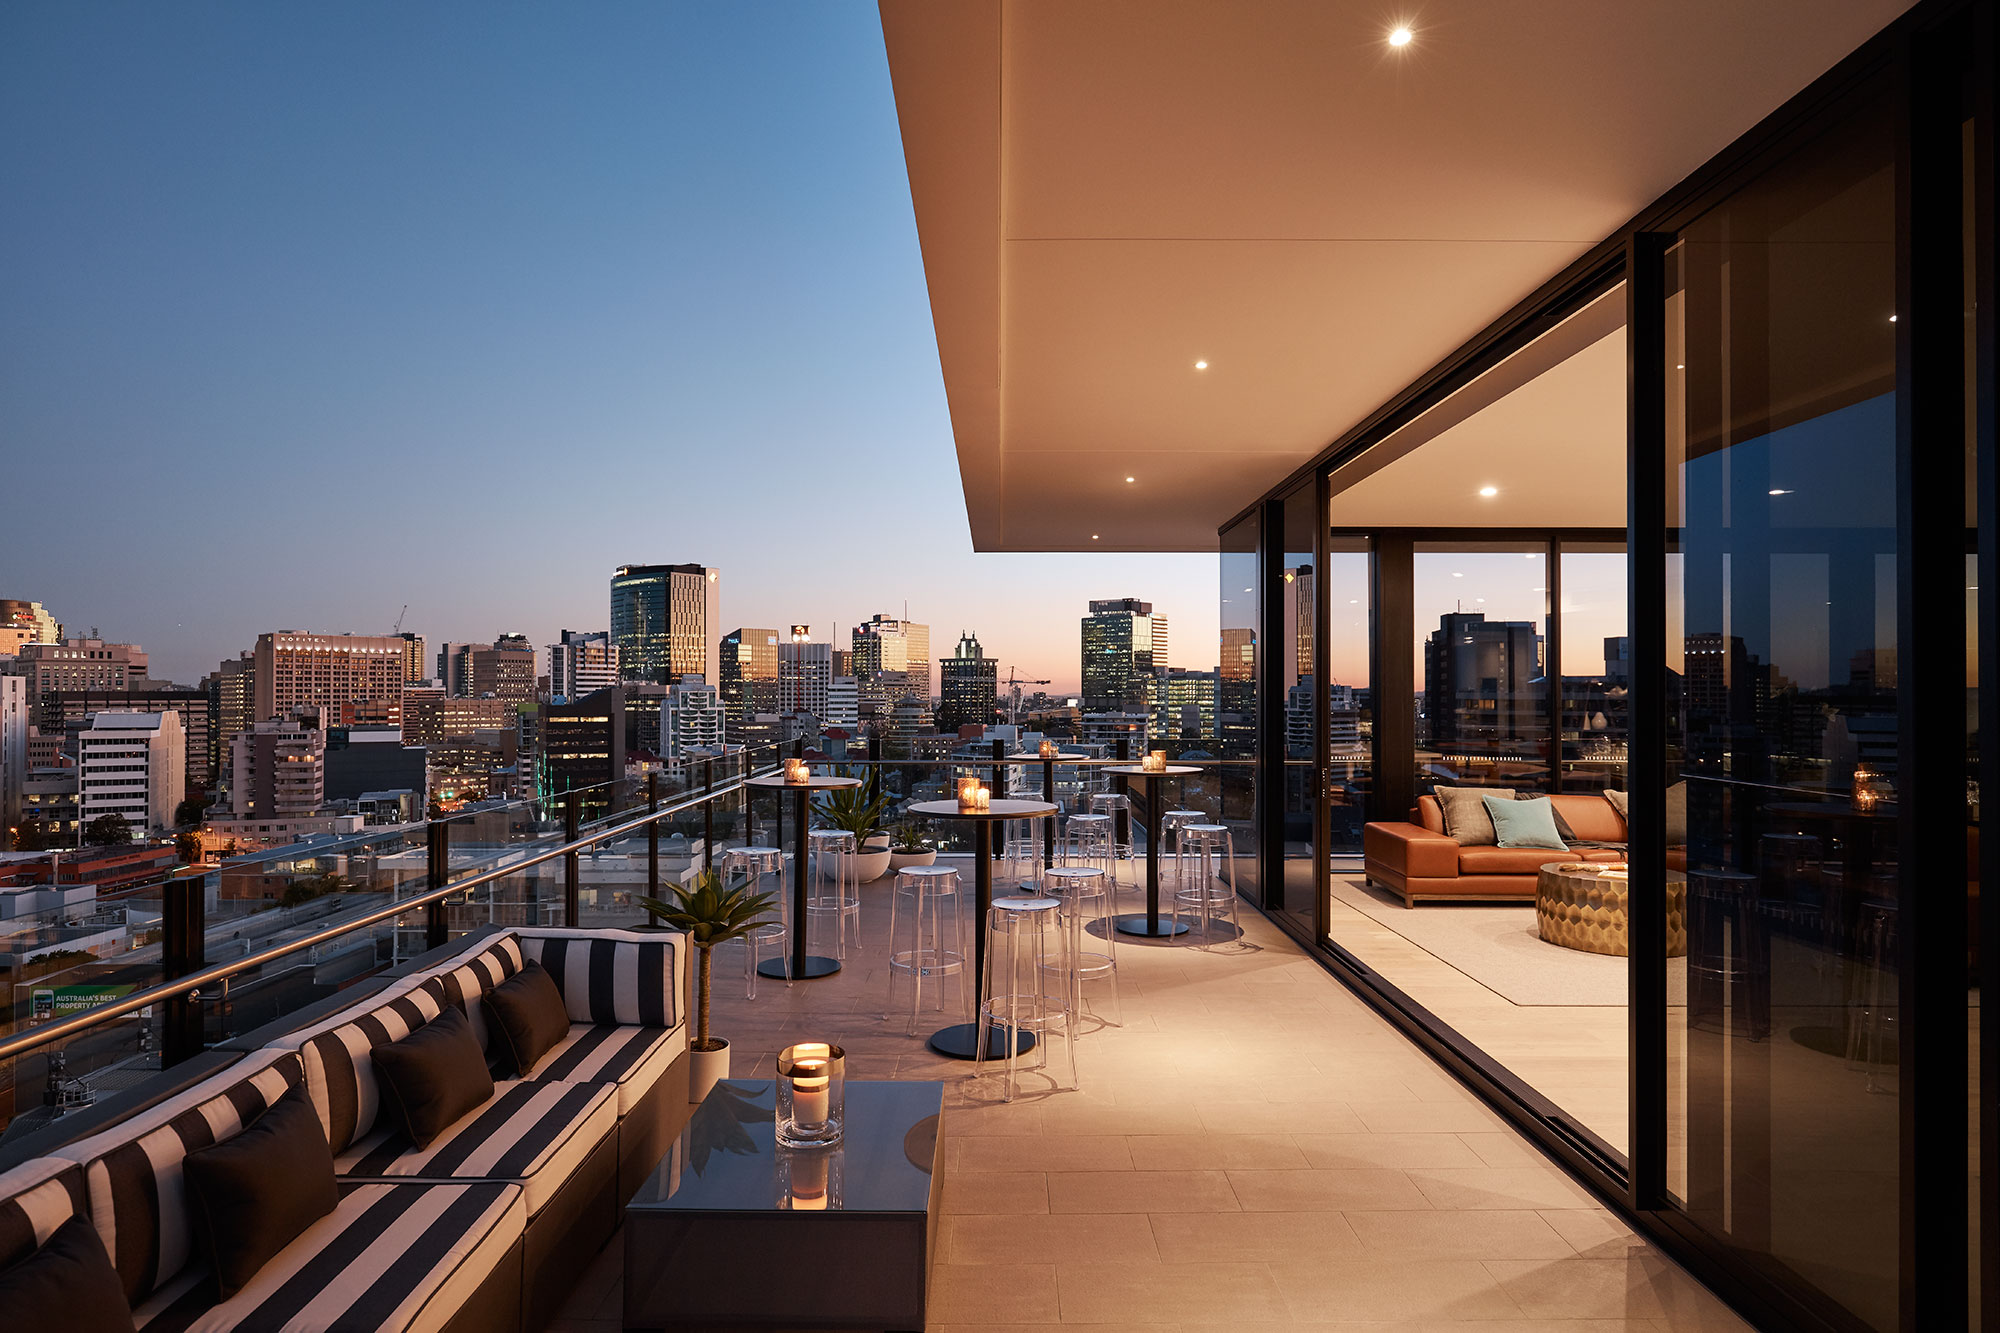 Penthouse deck with city views.